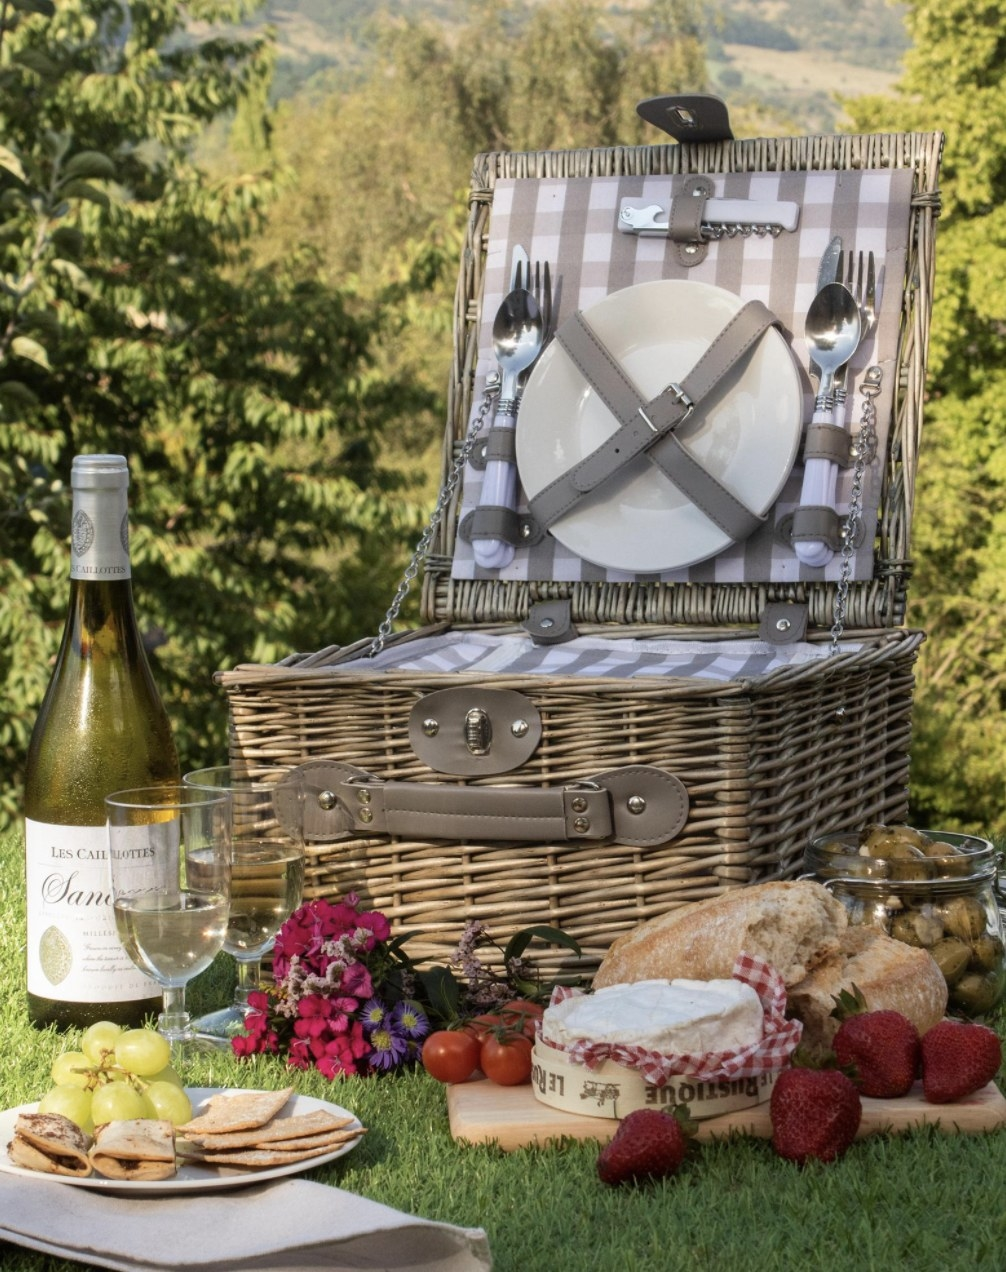 The picnic basket with gingham lining and strapped-in plates, cutlery, and a bottle opener